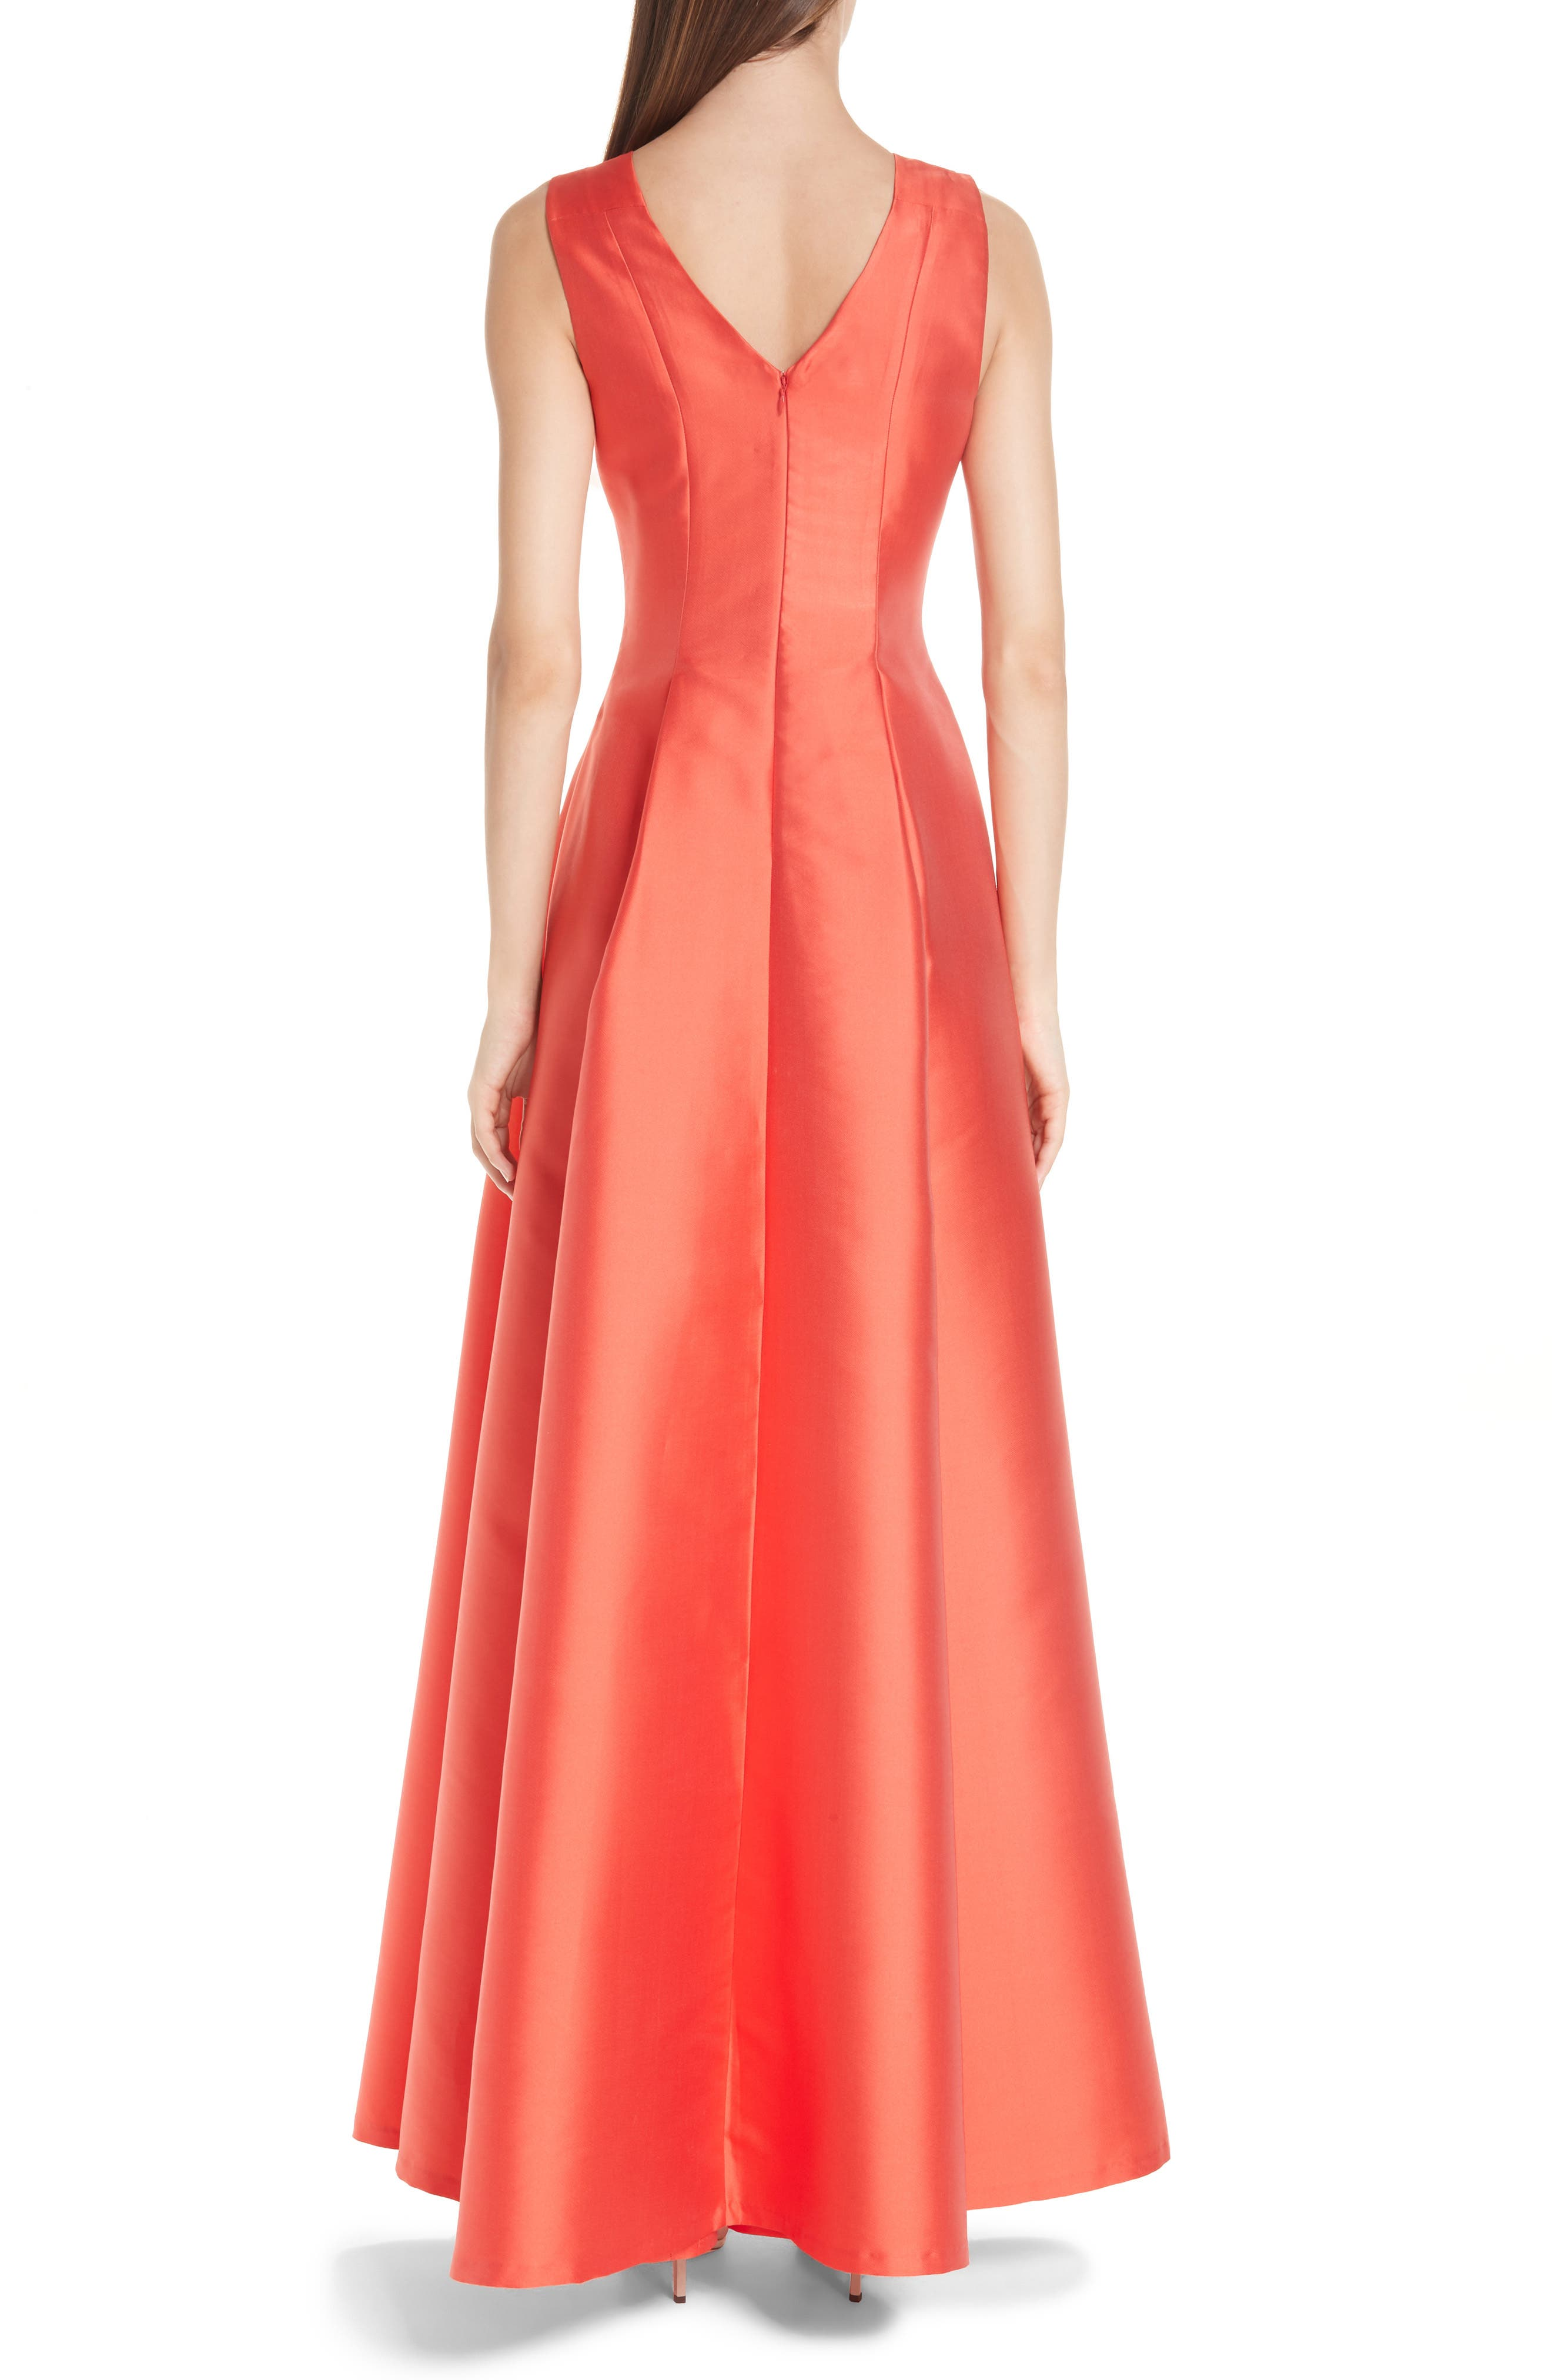 Marmara Ballgown,                             Alternate thumbnail 2, color,                             Coral Red